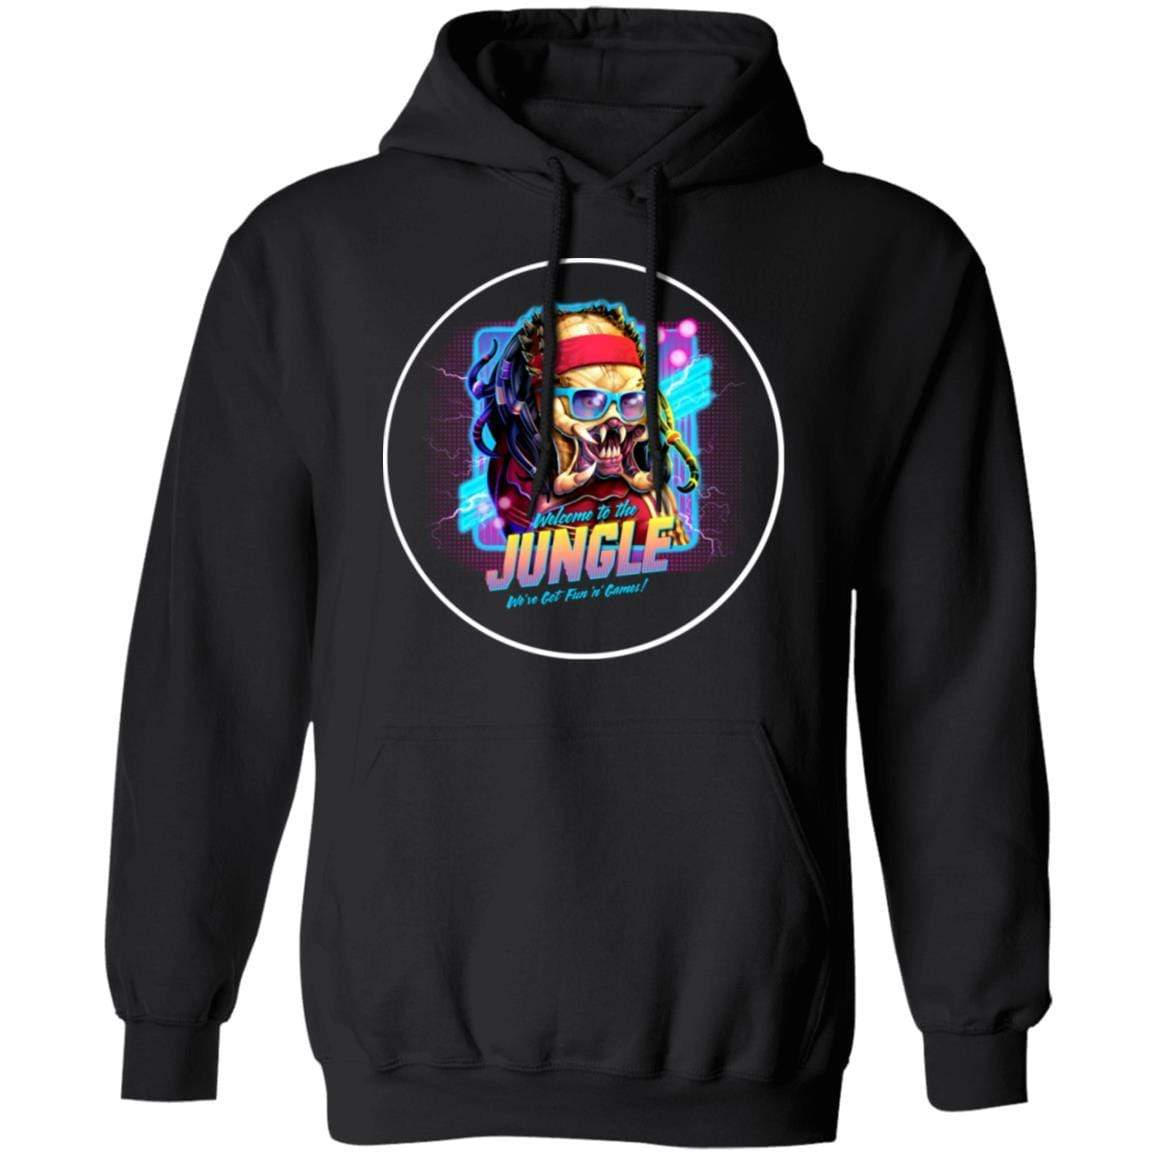 Welcome To The Jungle We've Got Fun'n' Games T-Shirts, Hoodies 541-4740-89706442-23087 - Tee Ript